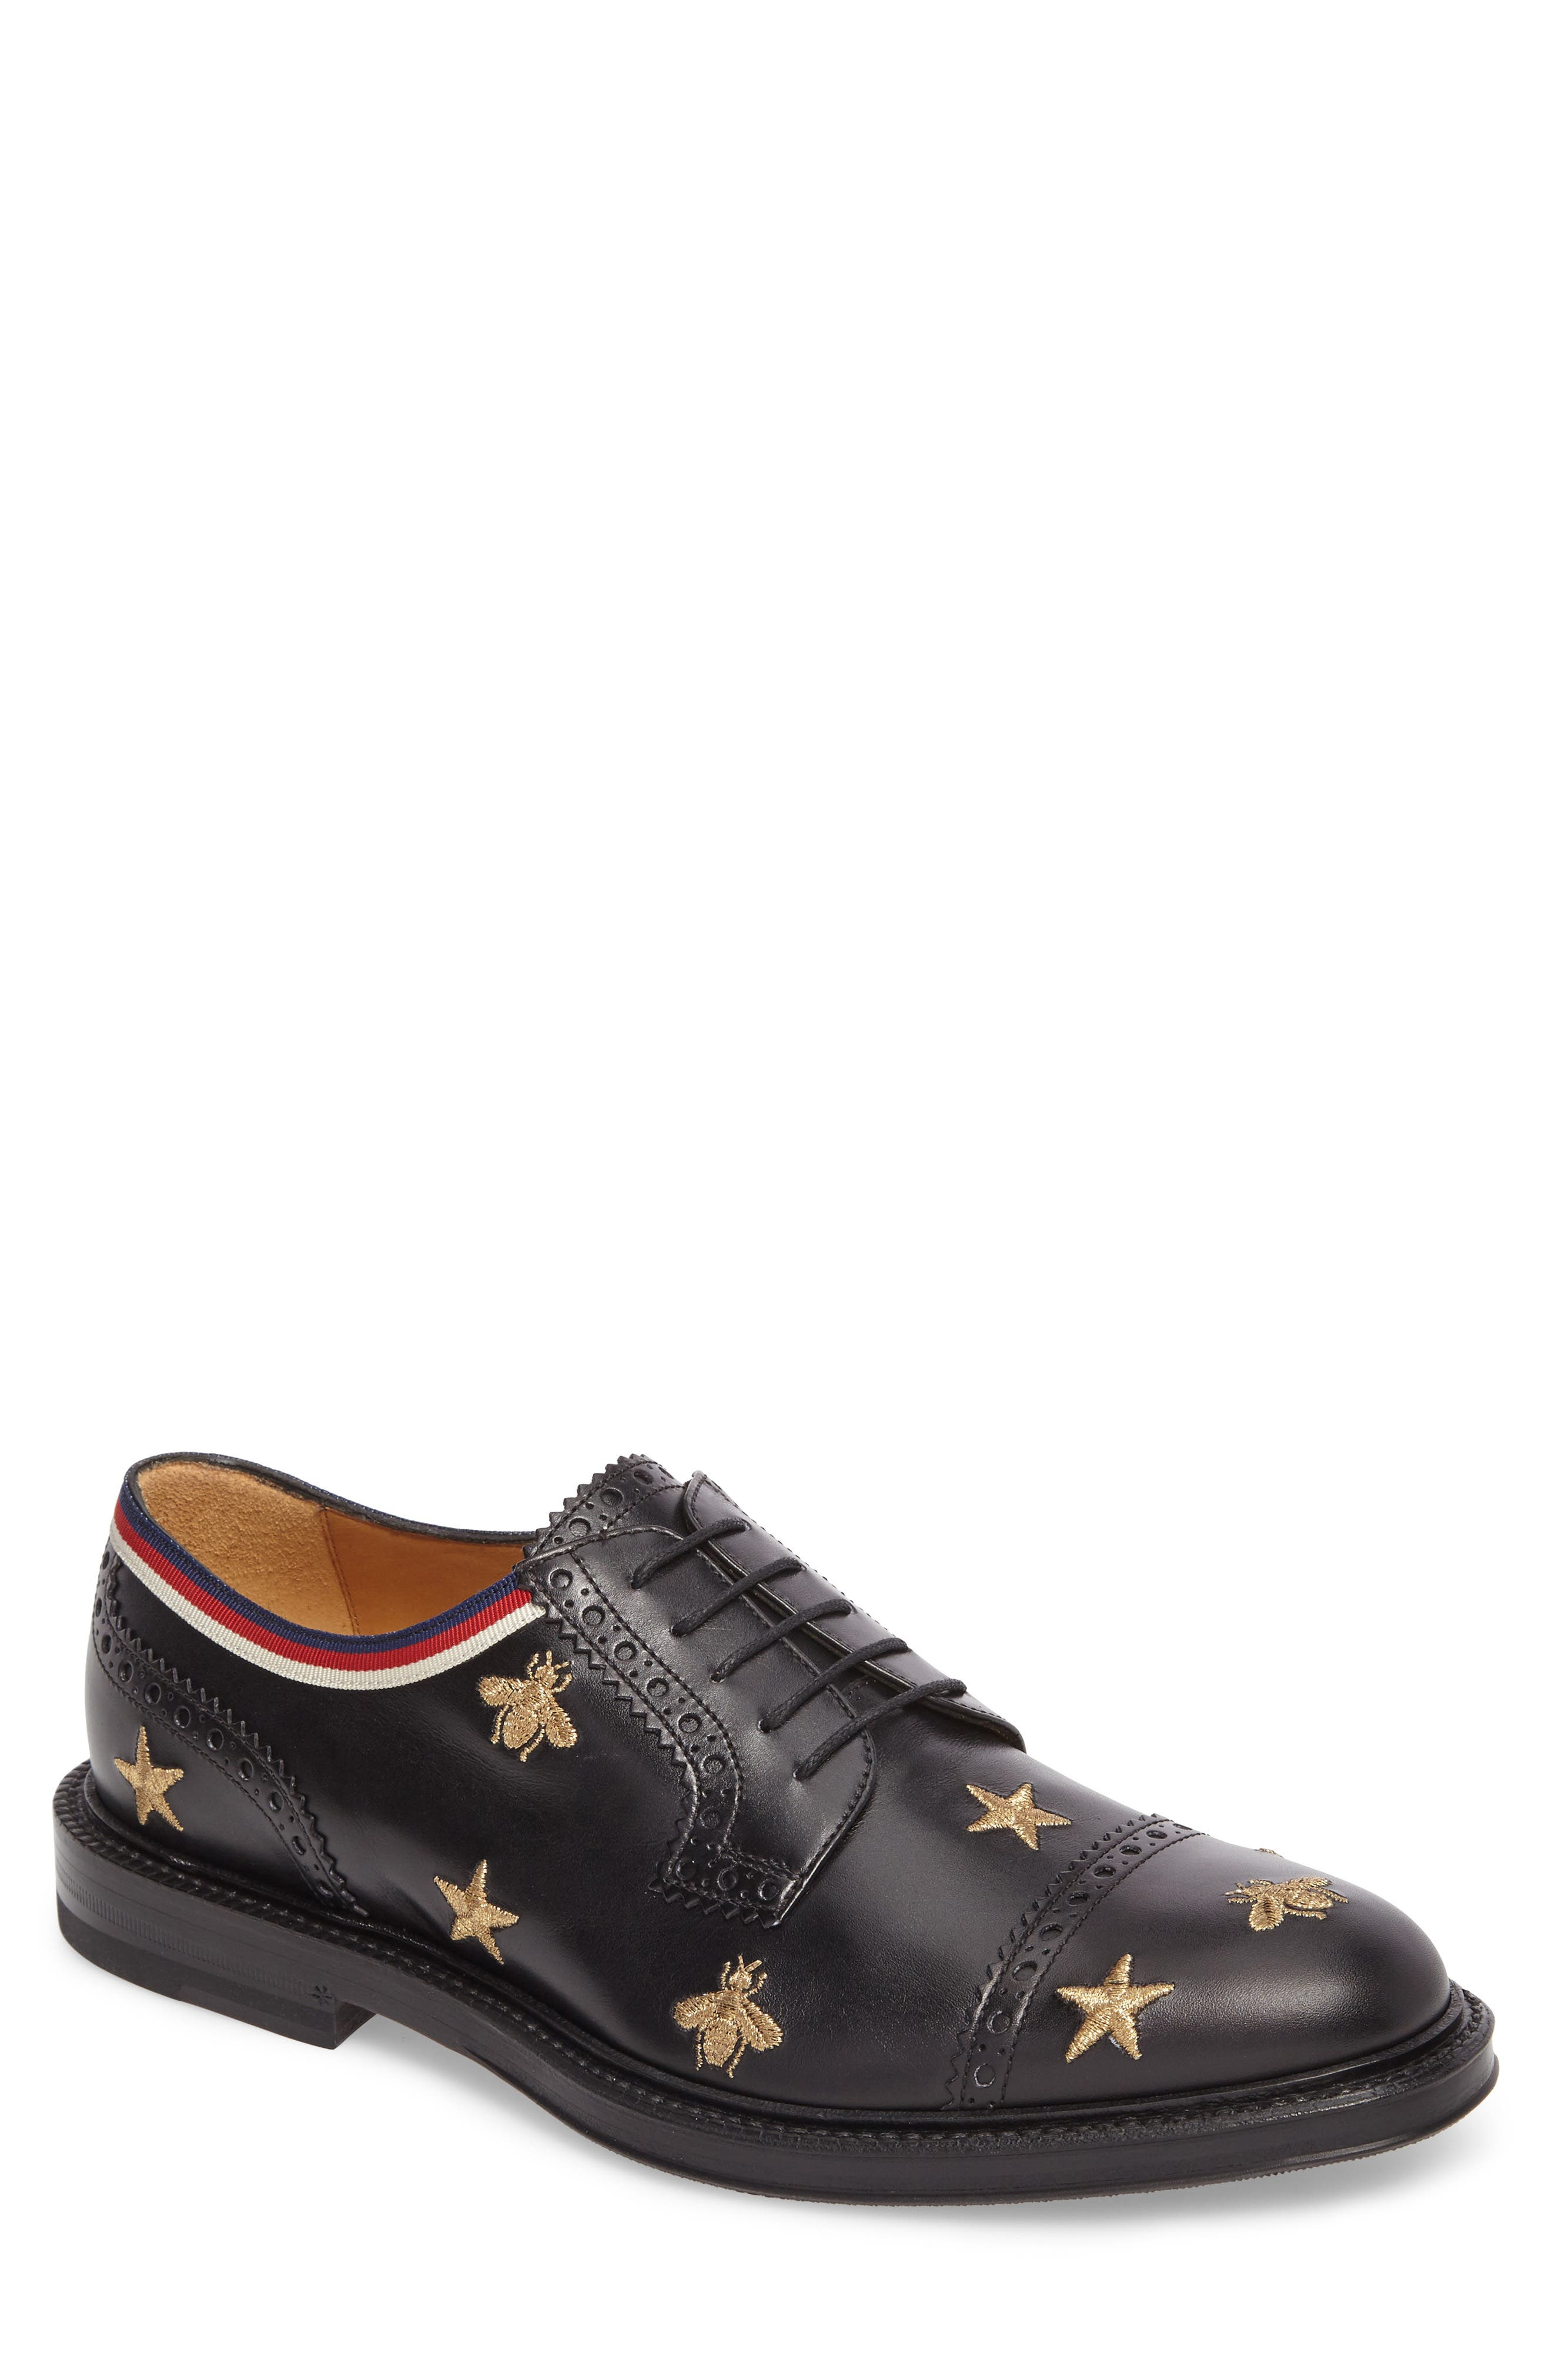 Embroidered Leather Brogue Shoe,                             Main thumbnail 1, color,                             Black